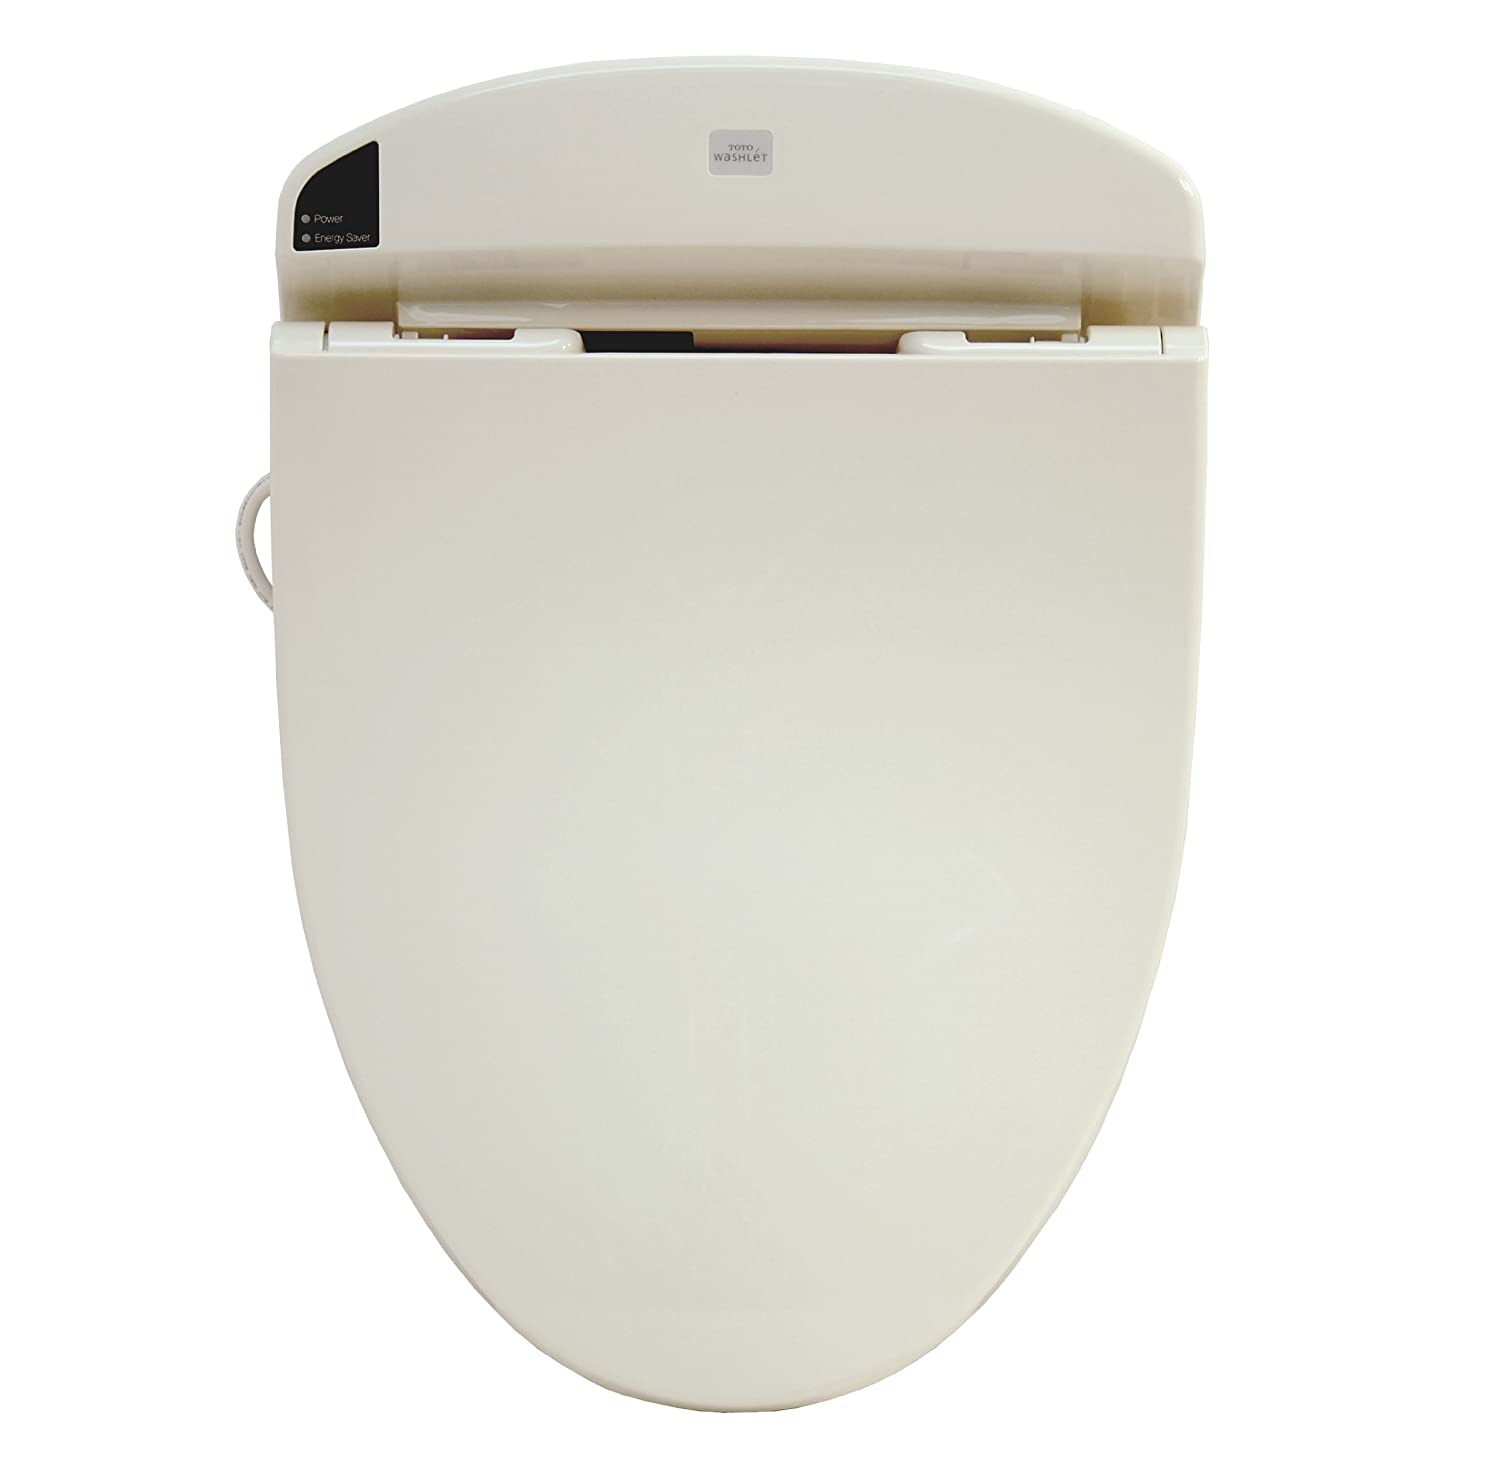 TOTO SW844#12 Washlet E200 Elongated Front Toilet Seat, Sedona Beige ...